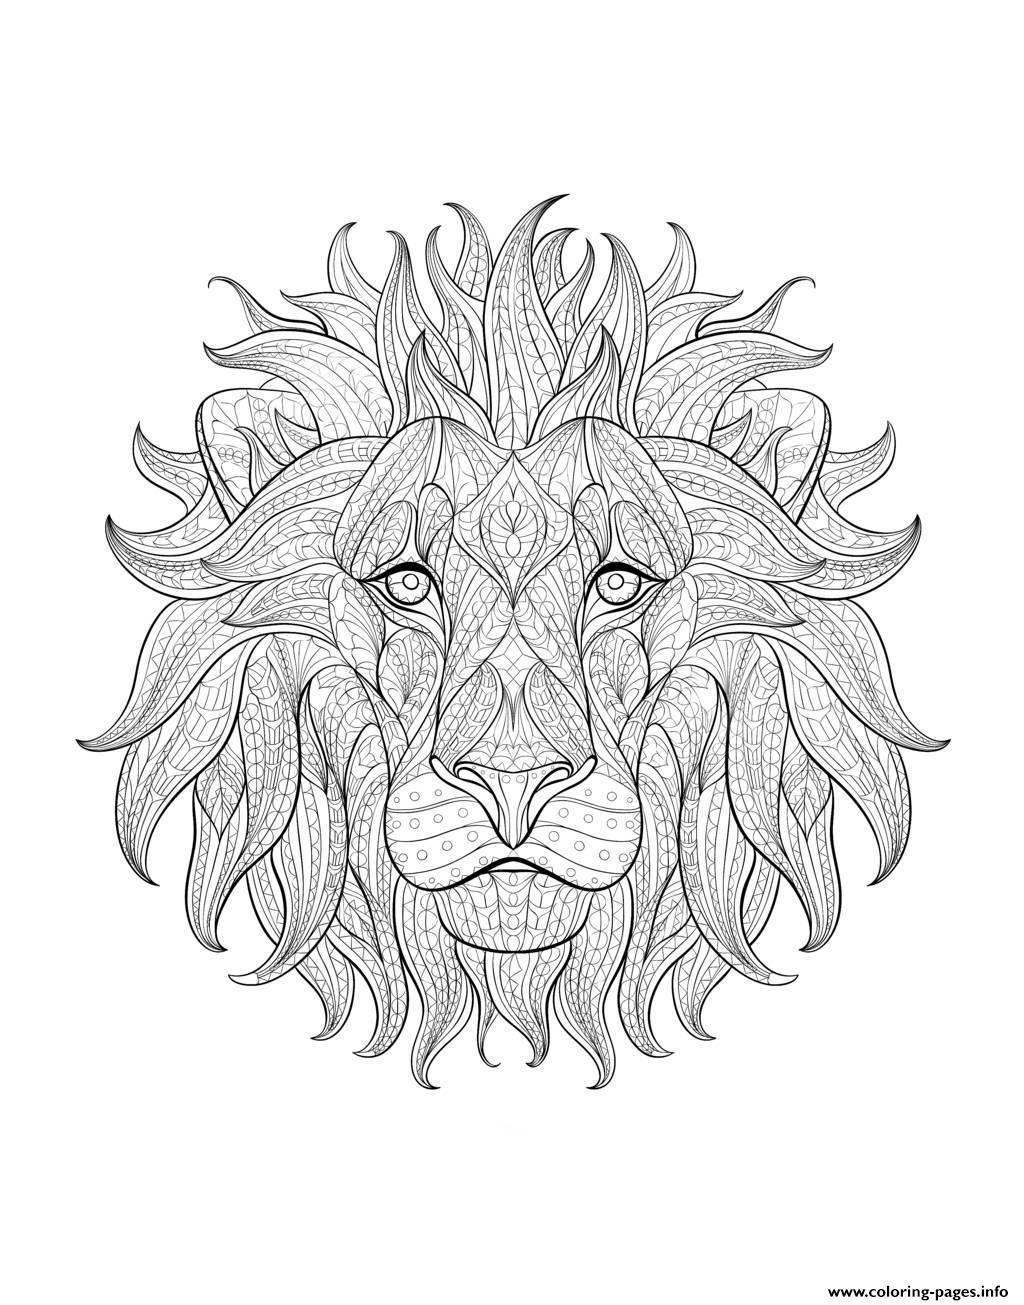 Adult Lion Head 3 coloring pages